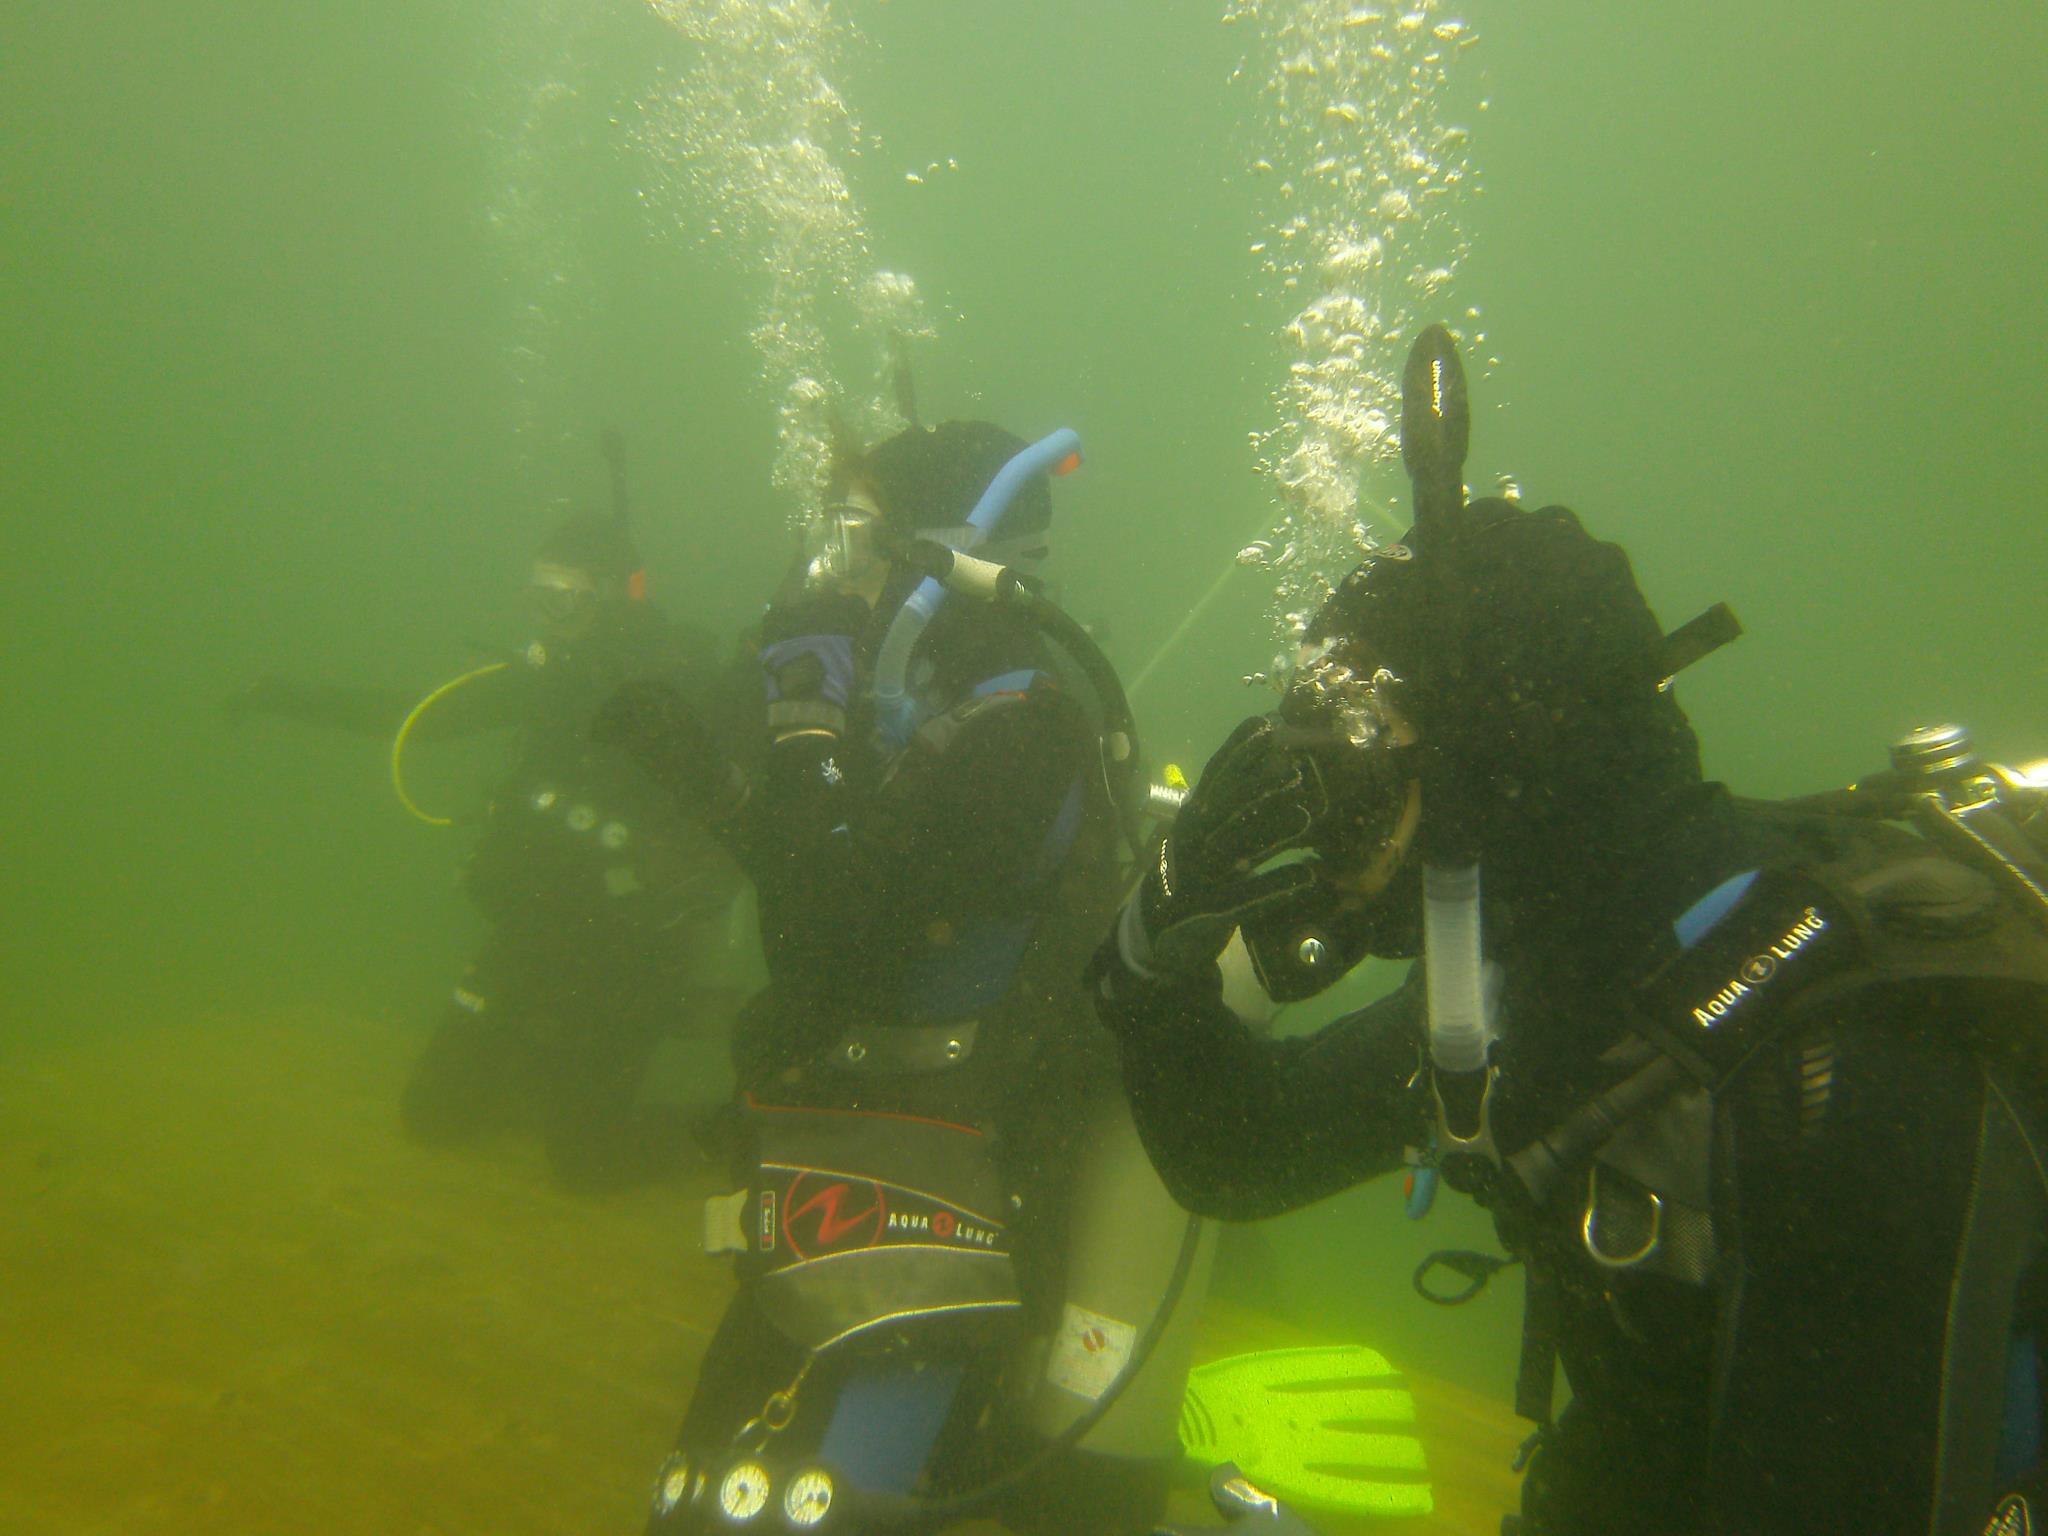 Scuba Scuba cert in Lake Rawlings, VA